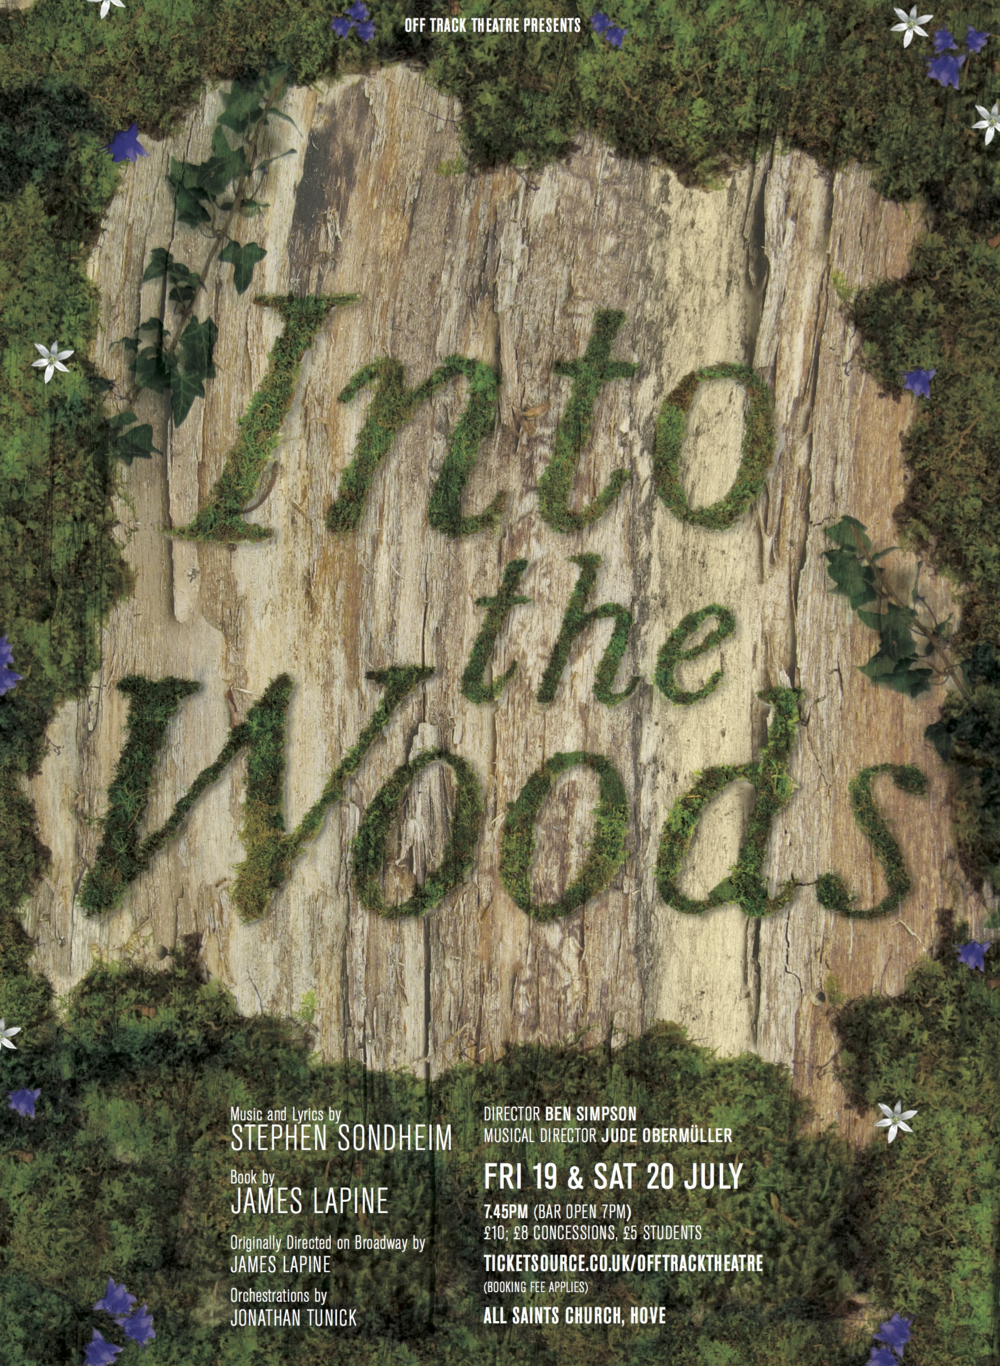 Into the Woods artwork, Off Track Theatre, Brighton 2014, conducted by Jude Obermüller.png